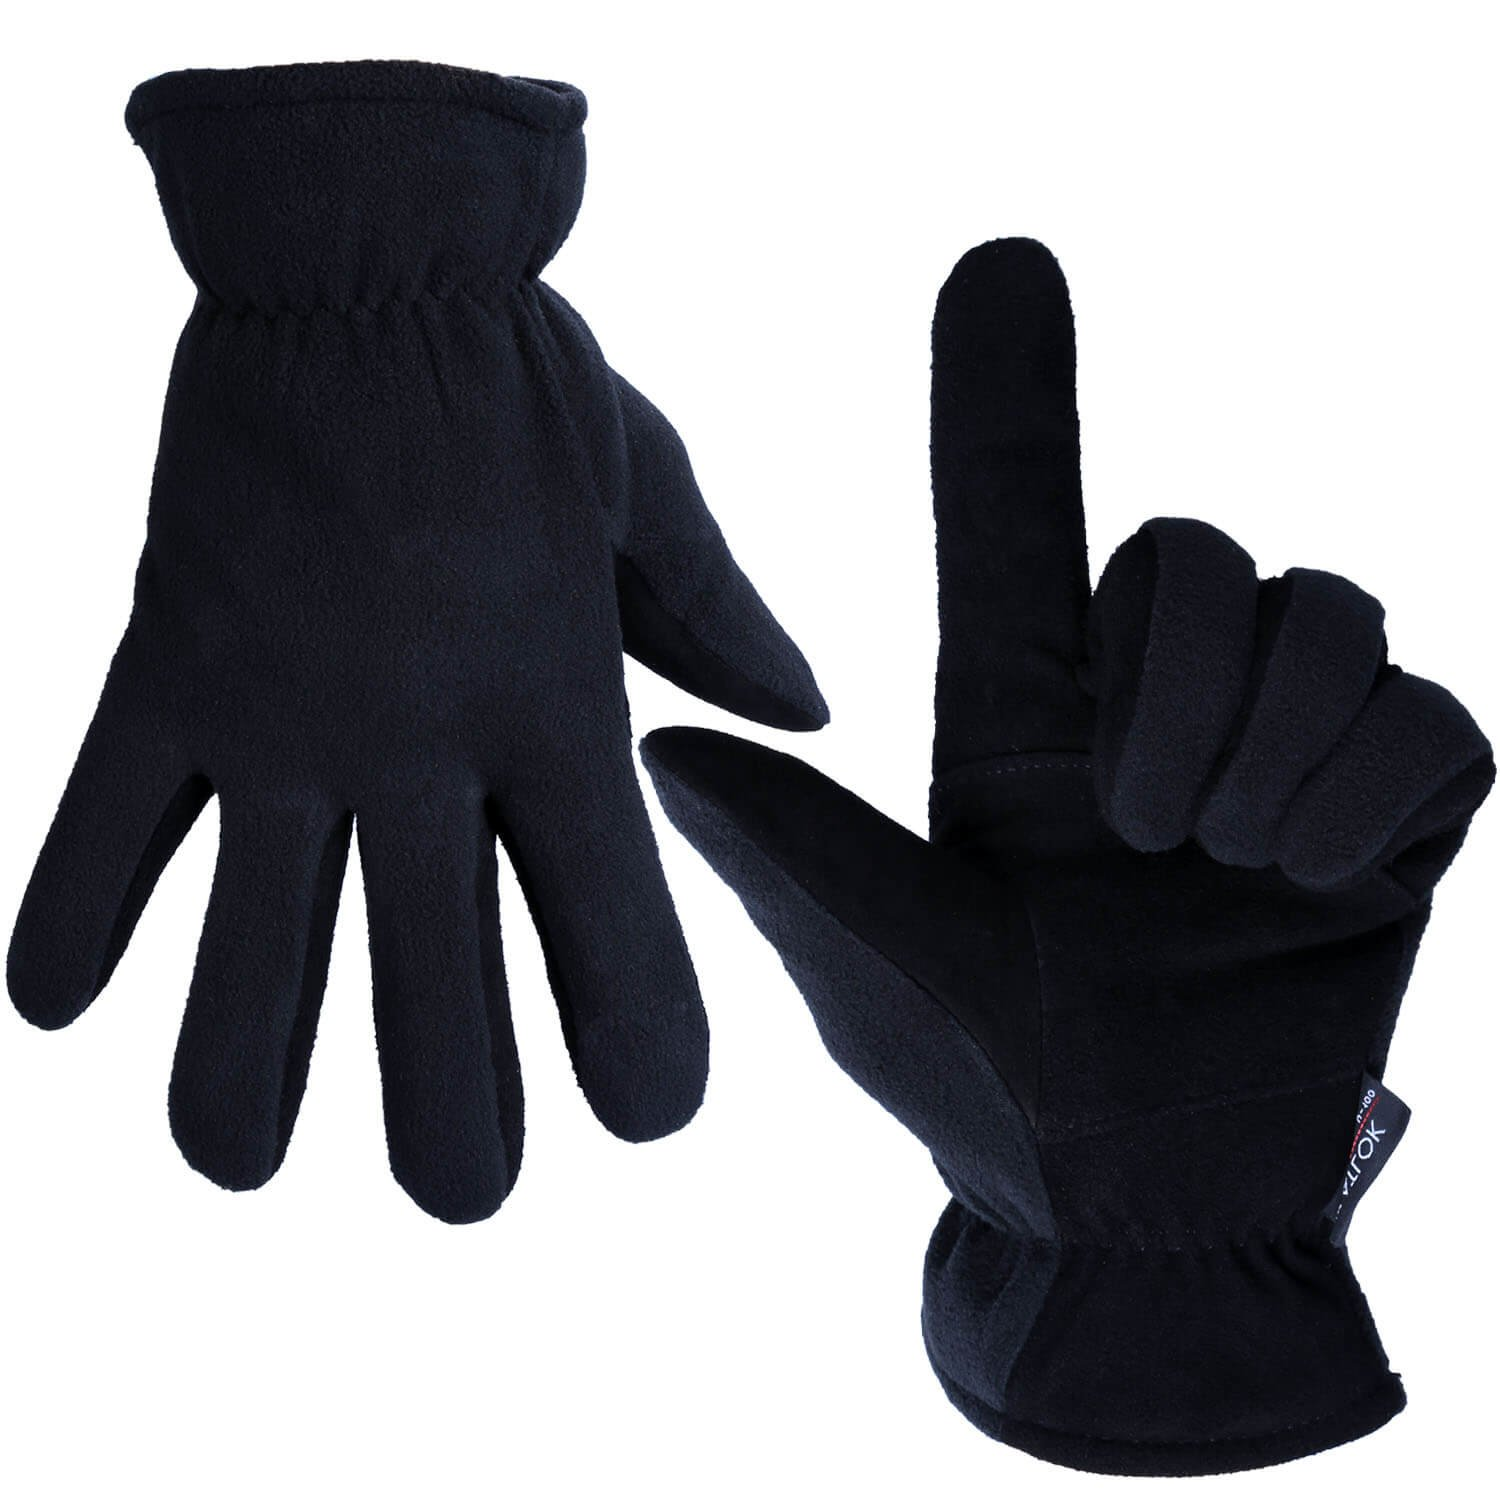 OZERO Deerskin Suede Leather Palm and Polar Fleece Back with Heatlok Insulated Cotton Layer Thermal Gloves, Medium - Denim-Black